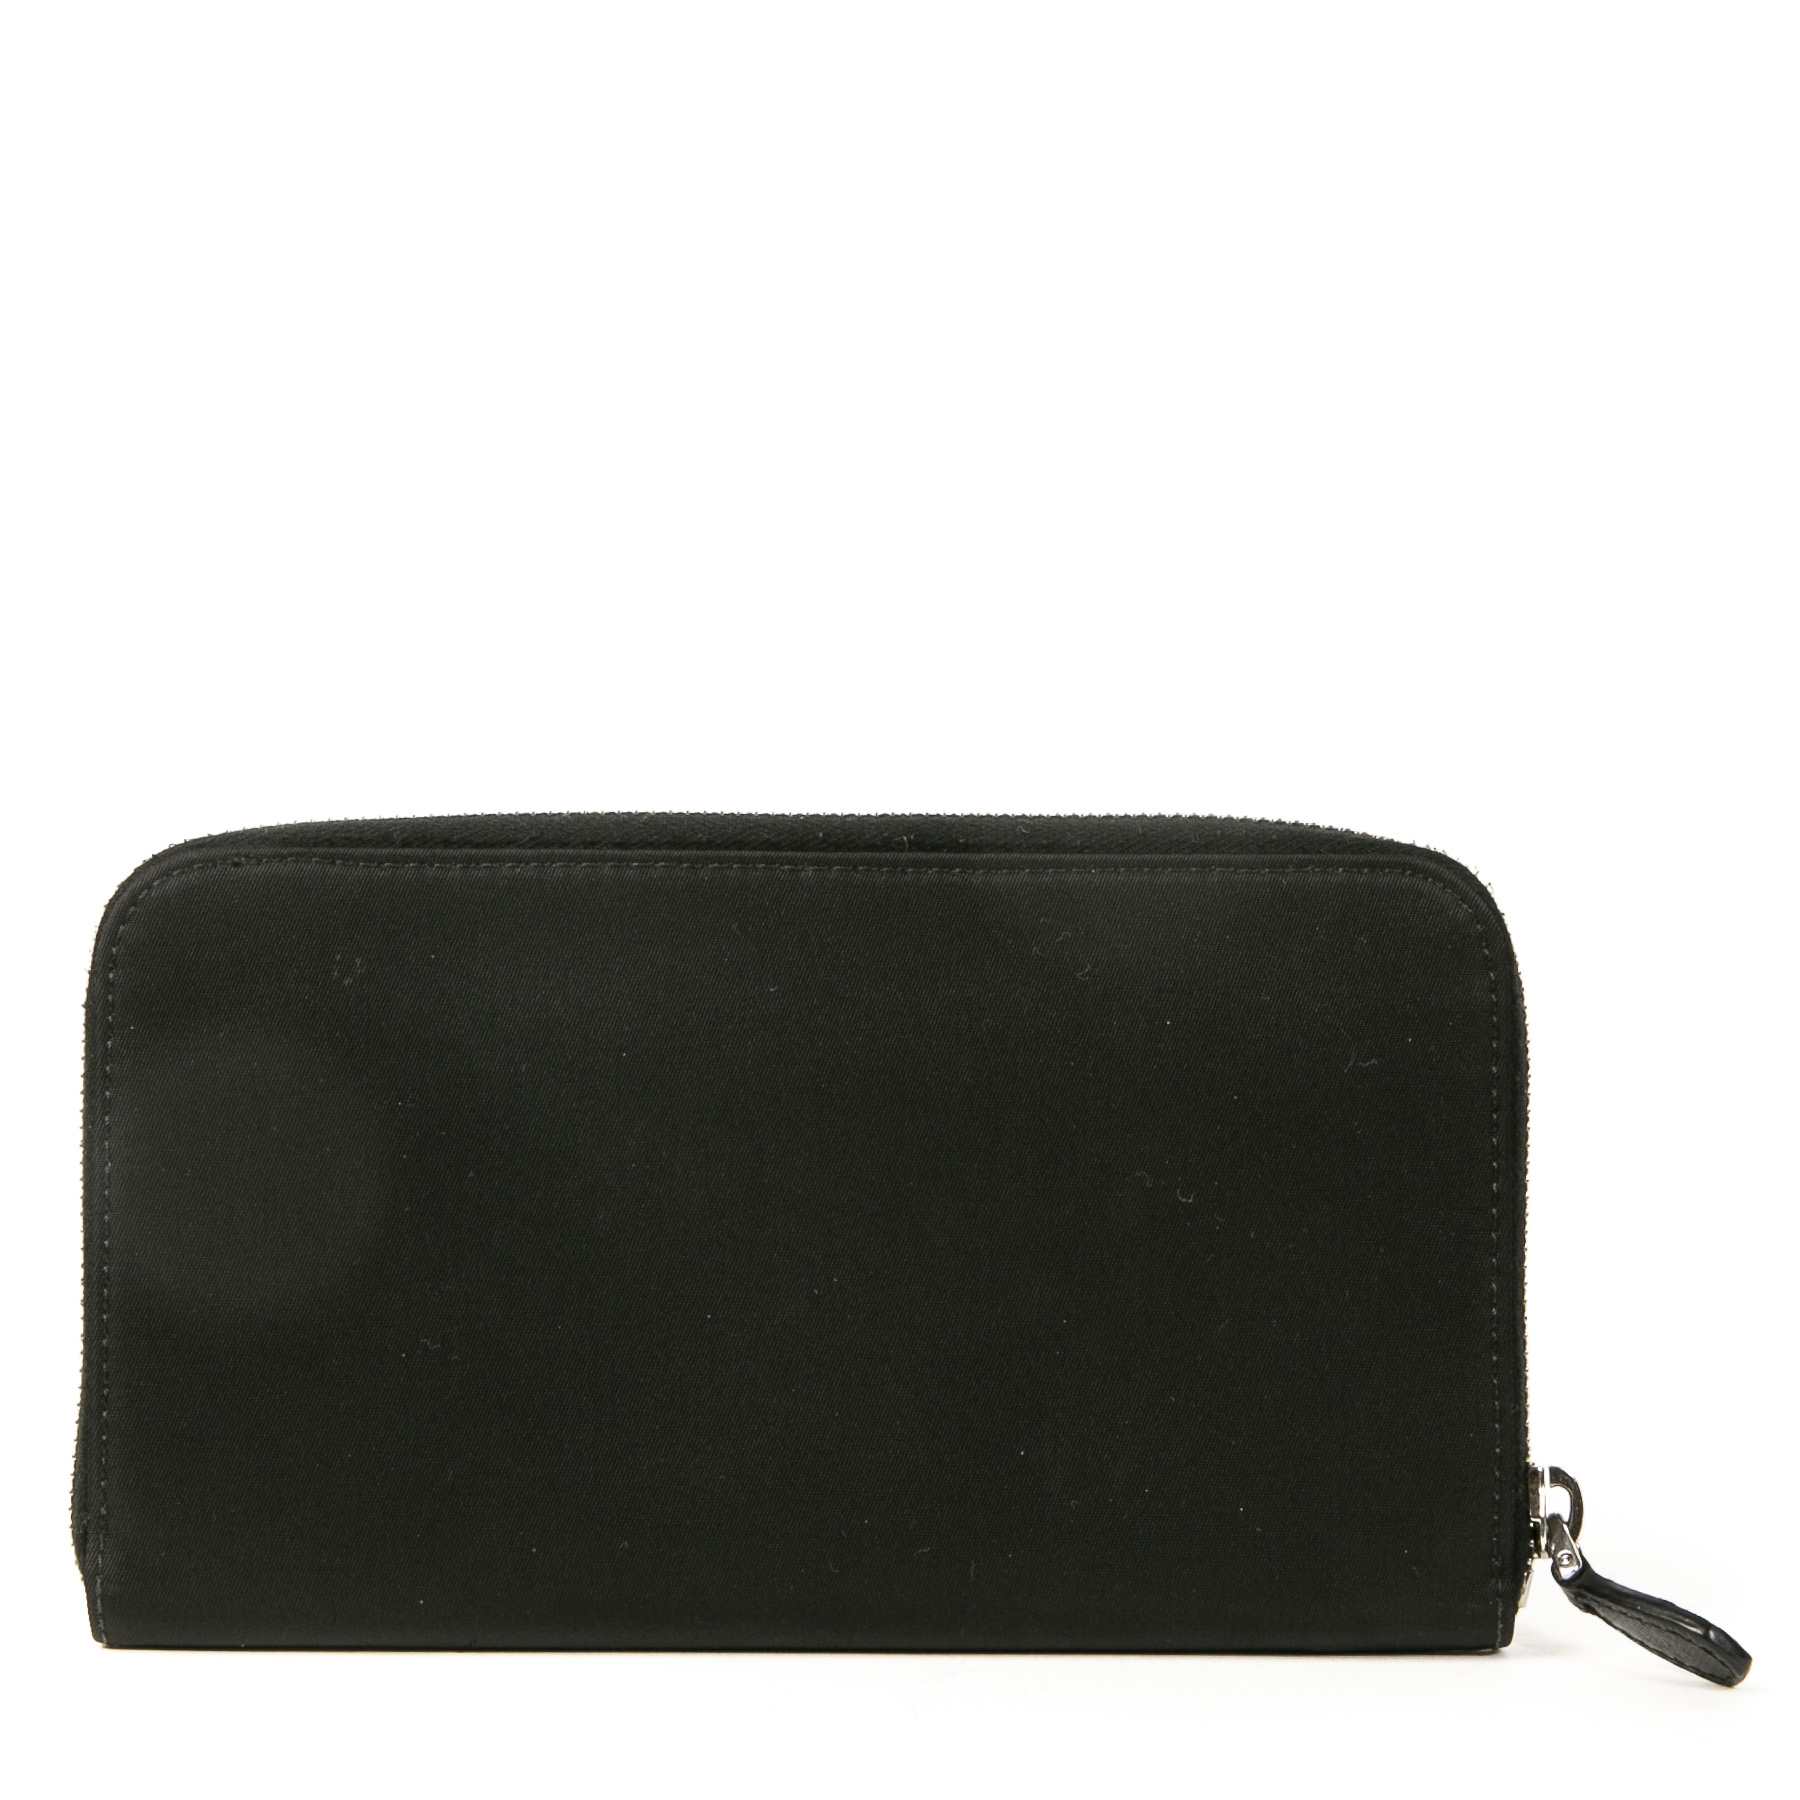 Authentieke tweedehands vintage Prada Tessuto Nylon Zip Around Wallet koop online webshop LabelLOV